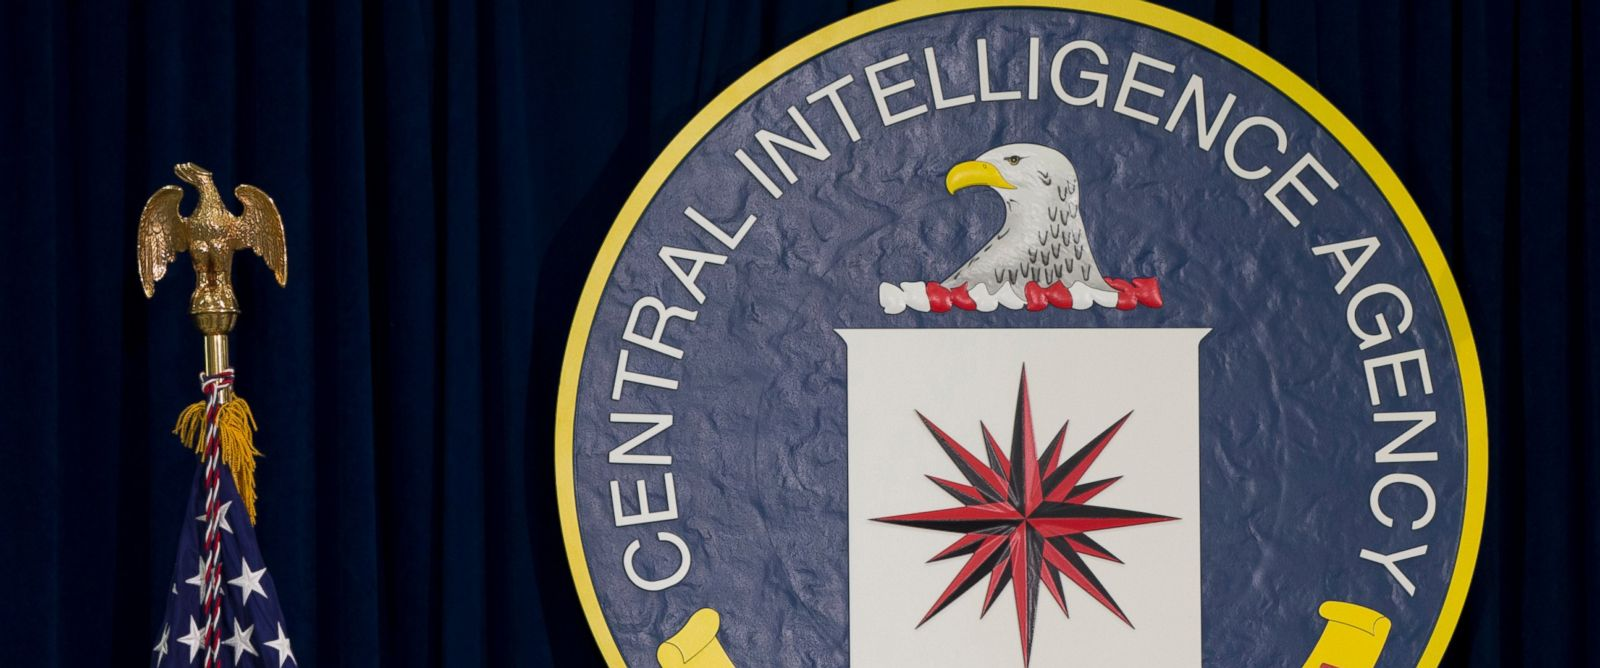 History of the Central Intelligence Agency